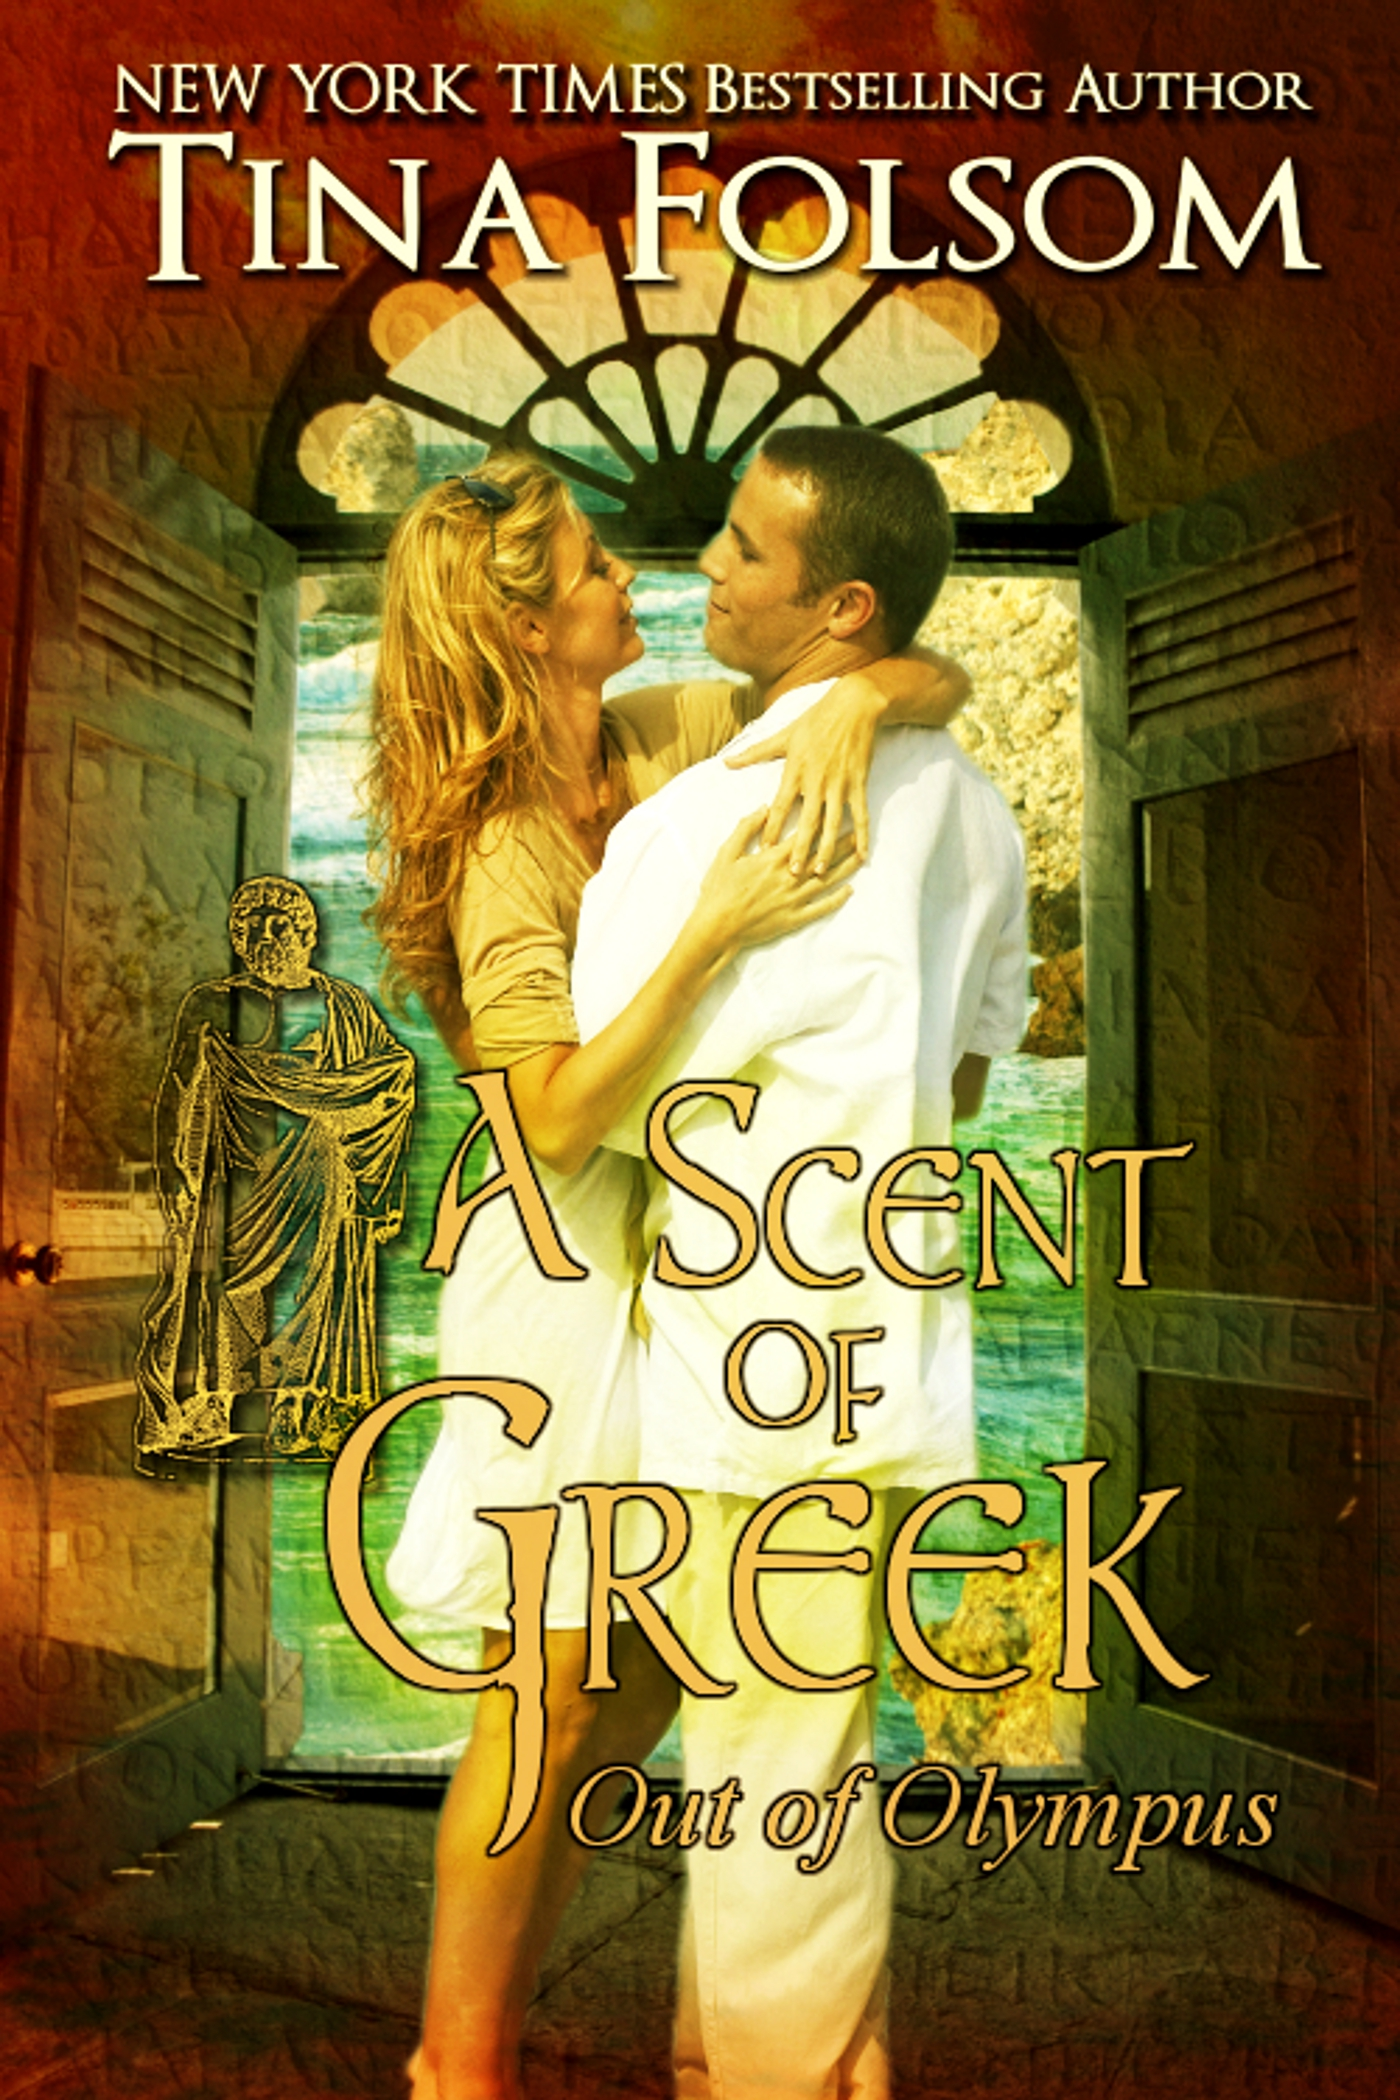 Tina Folsom - A Scent of Greek (Out of Olympus #2)